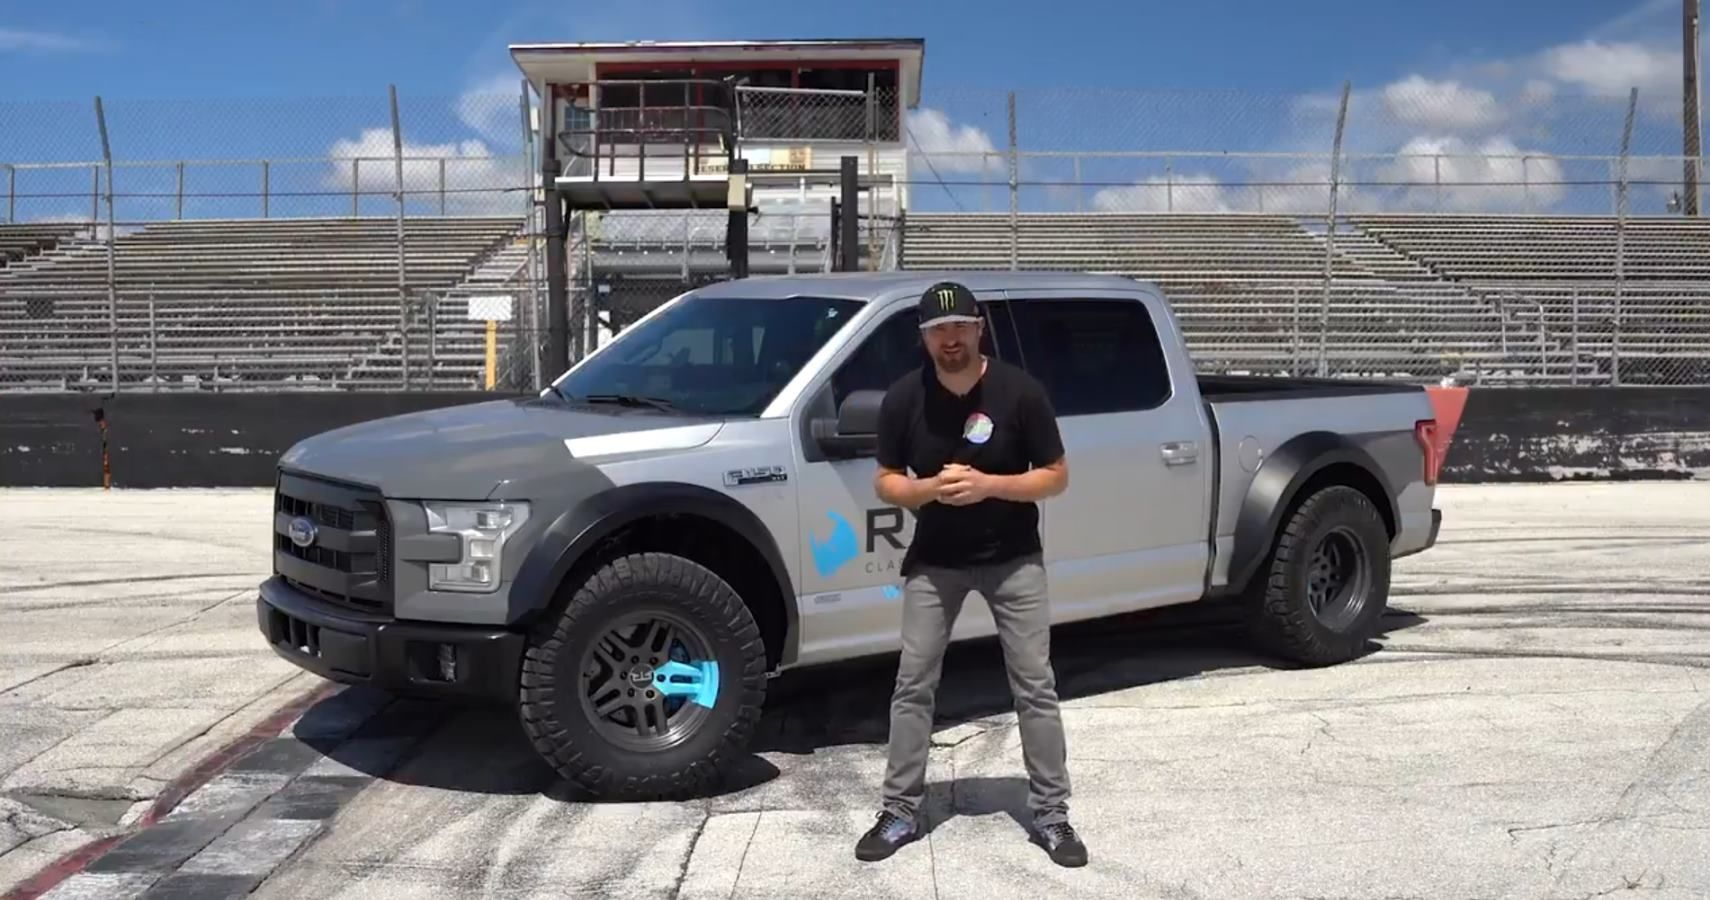 Learn How To Win Vaughn Gittin Jr.'s Heavily Modified F-150